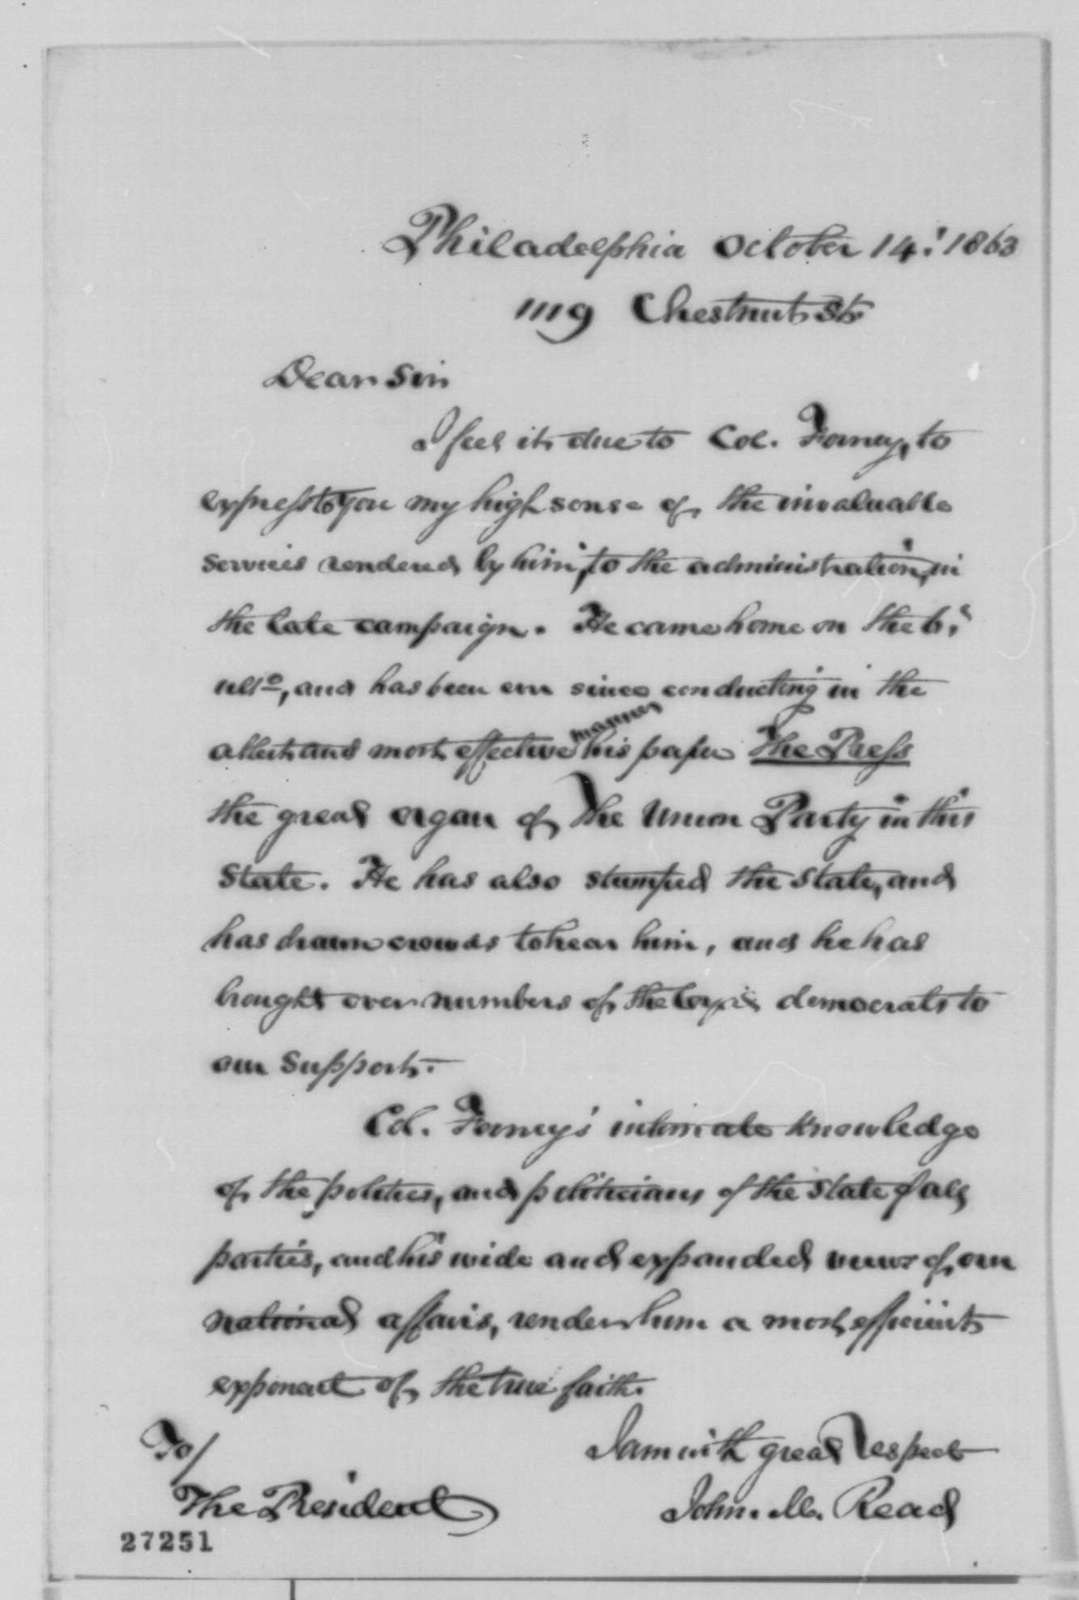 John M. Read to Abraham Lincoln, Wednesday, October 14, 1863  (John W. Forney's efforts in the recent campaign)